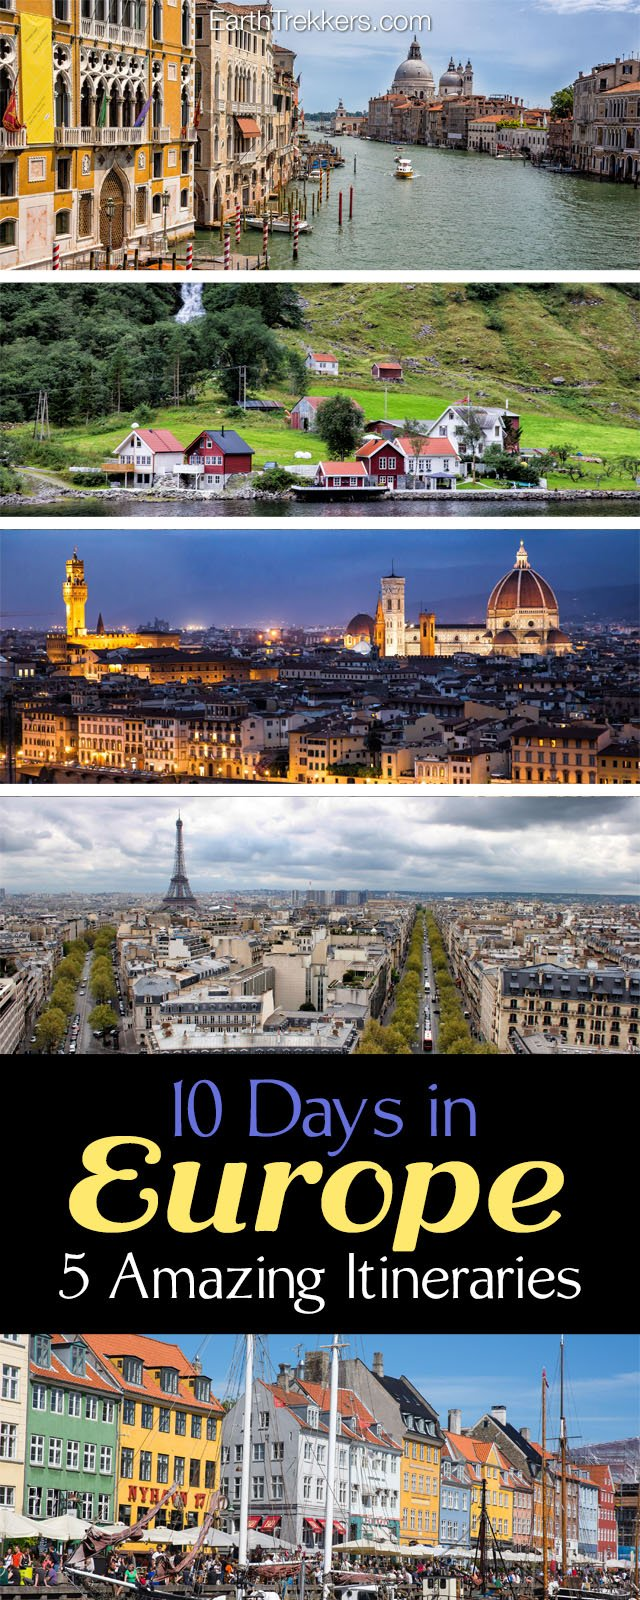 10 Days in Europe Travel Itineraries